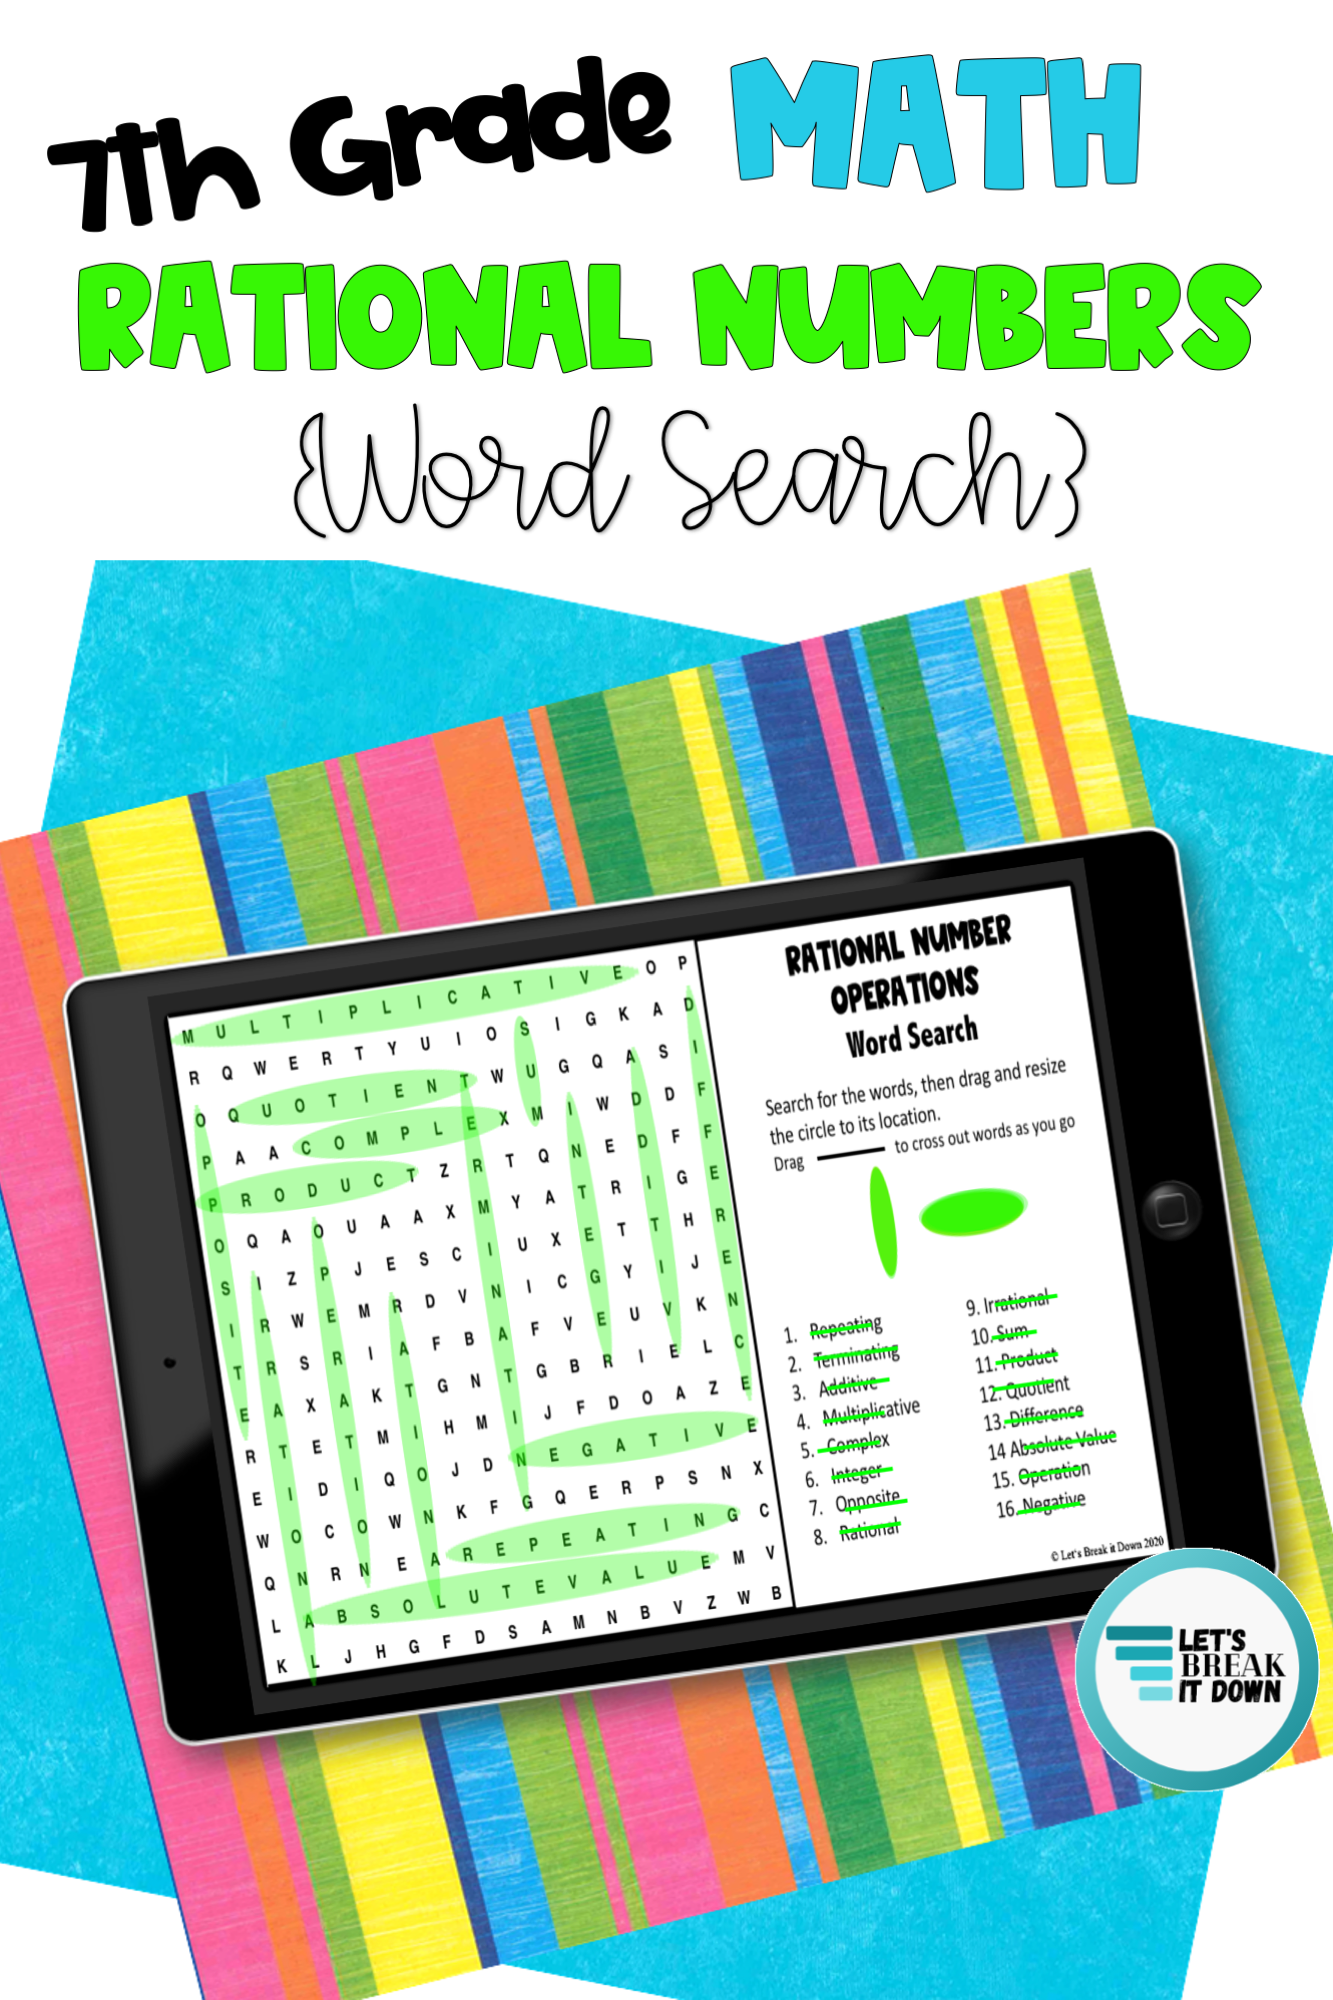 7th Grade Rational Numbers Word Search Google Slide Activity For Google Classroom Middle School Math Resources Google Classroom Middle School Math Classroom